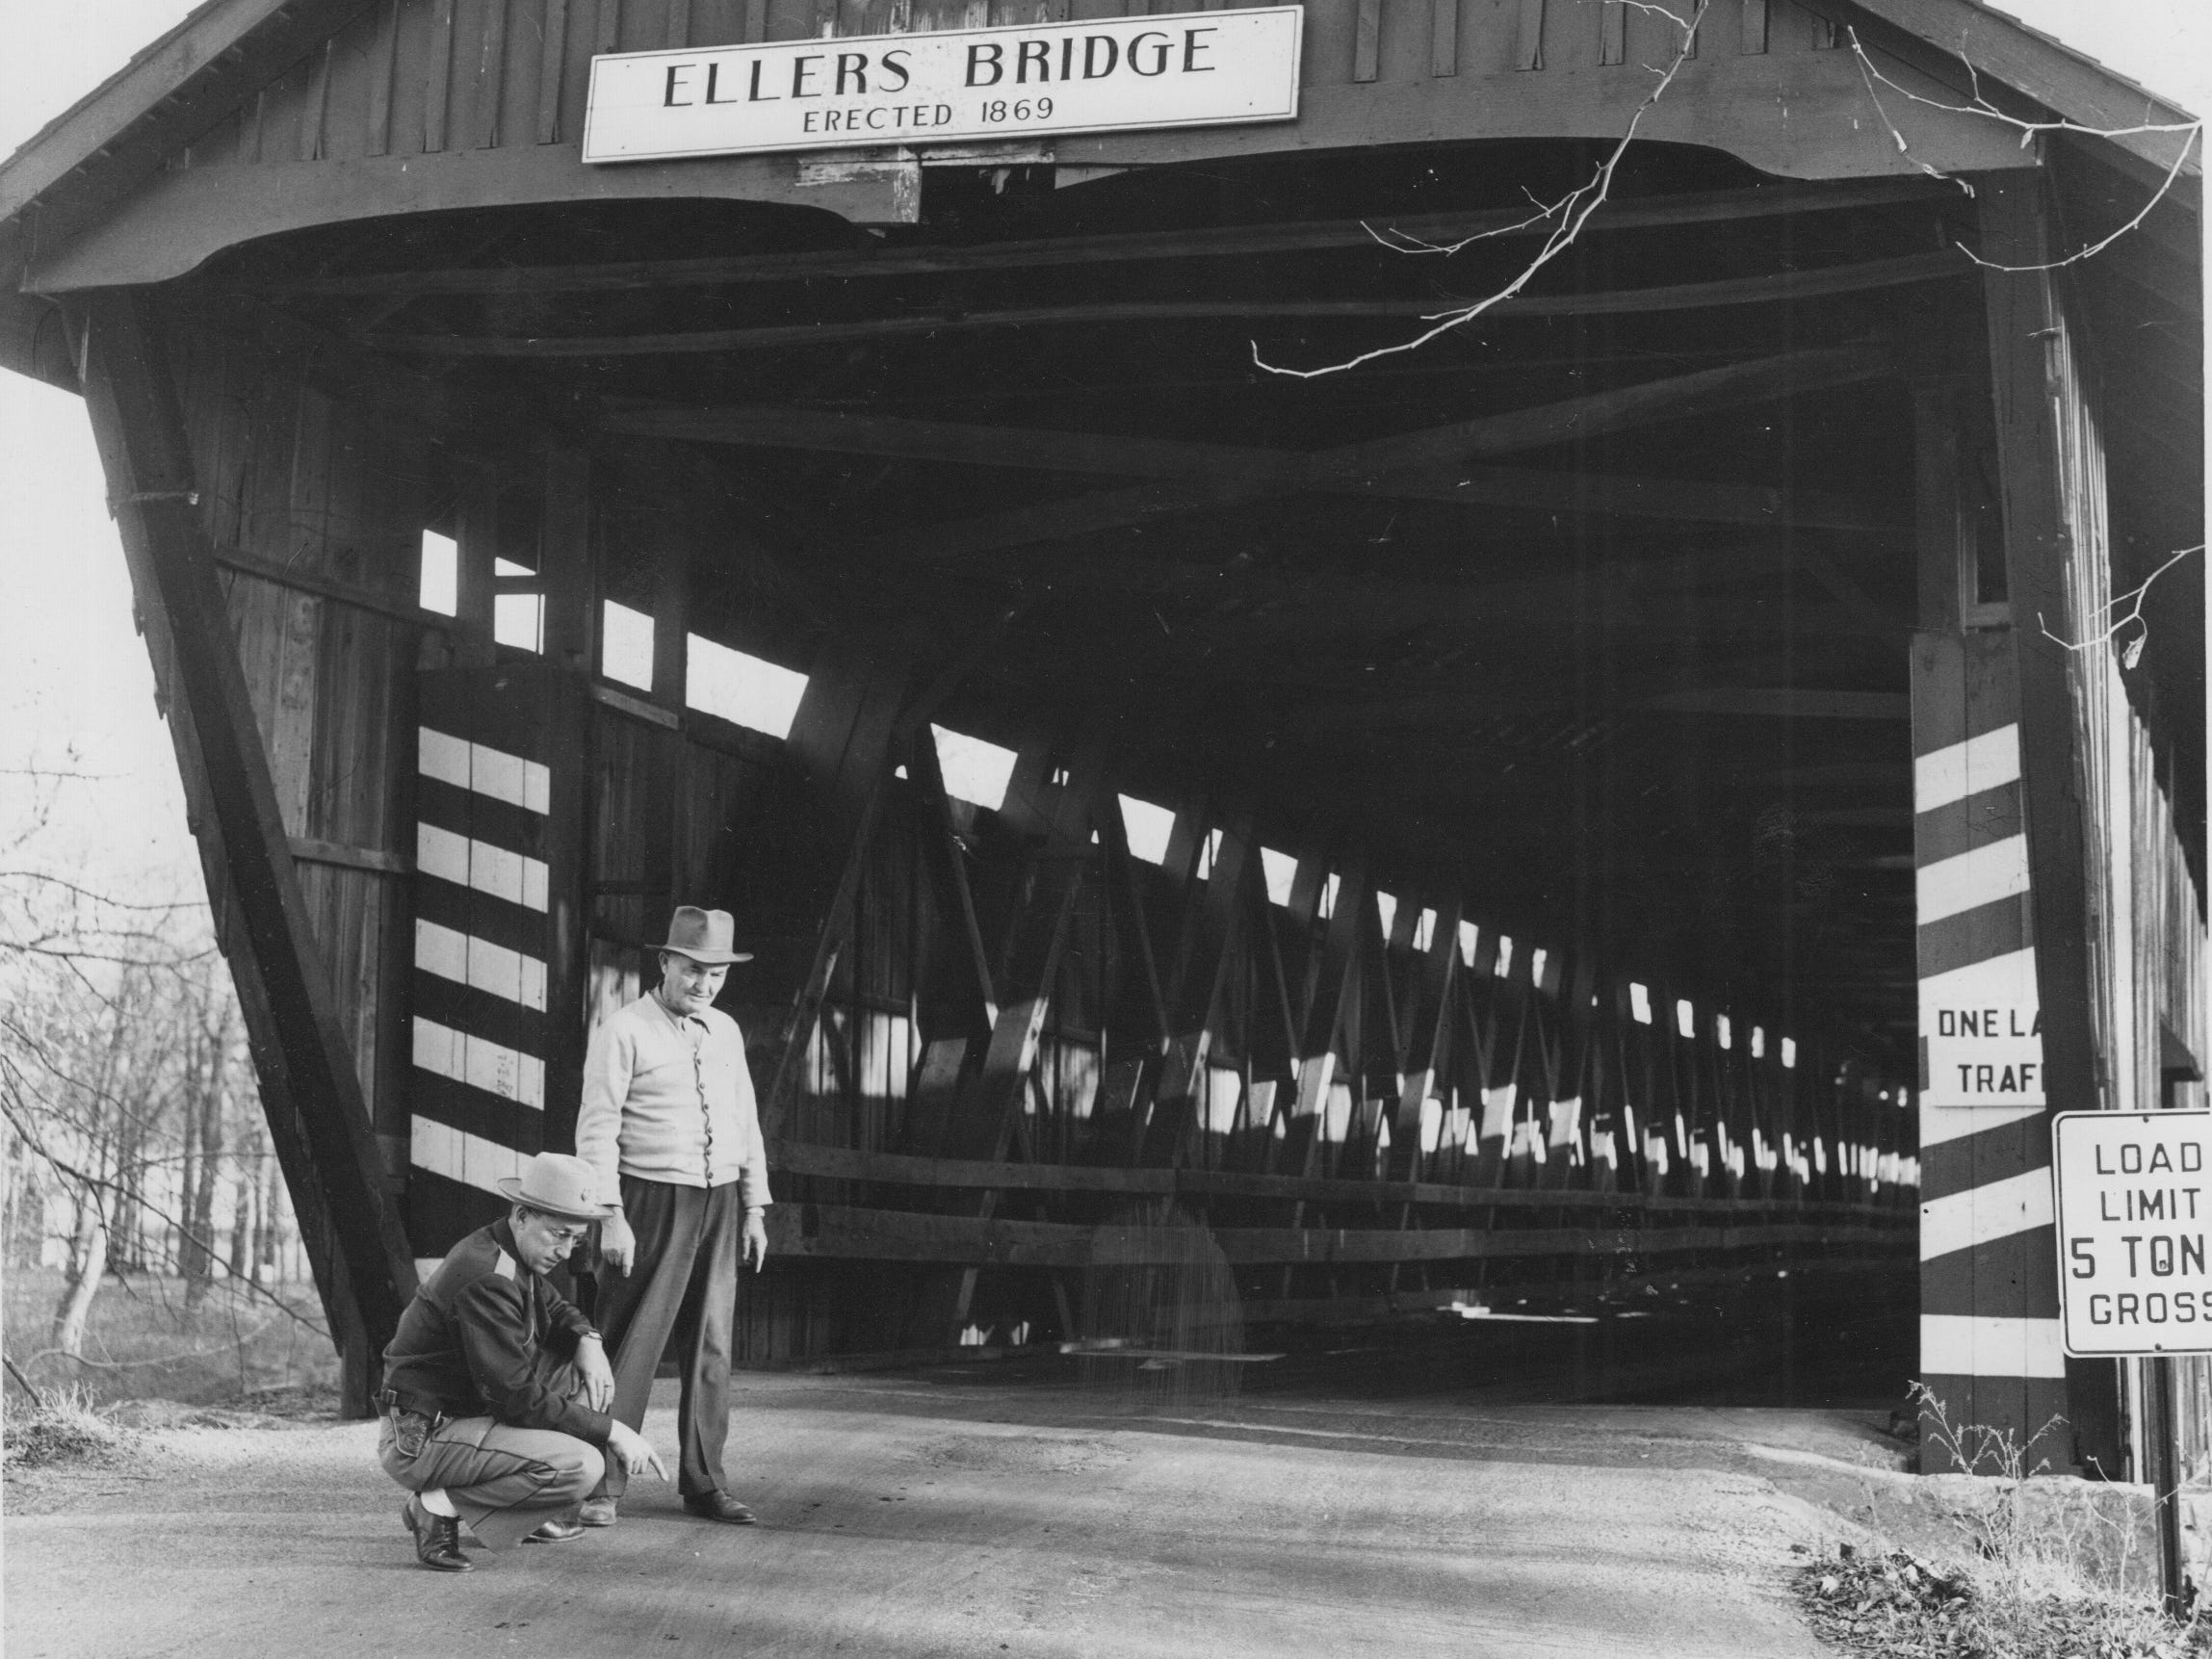 Hamilton County investigators look at traces of gasoline spread at the entrance of the Ellers covered bridge that carried 116th Street over White River in 1953 A passing motorist extinguished the flames before they had damaged the span. Arsonist were successful when it was destroyed in 1957.